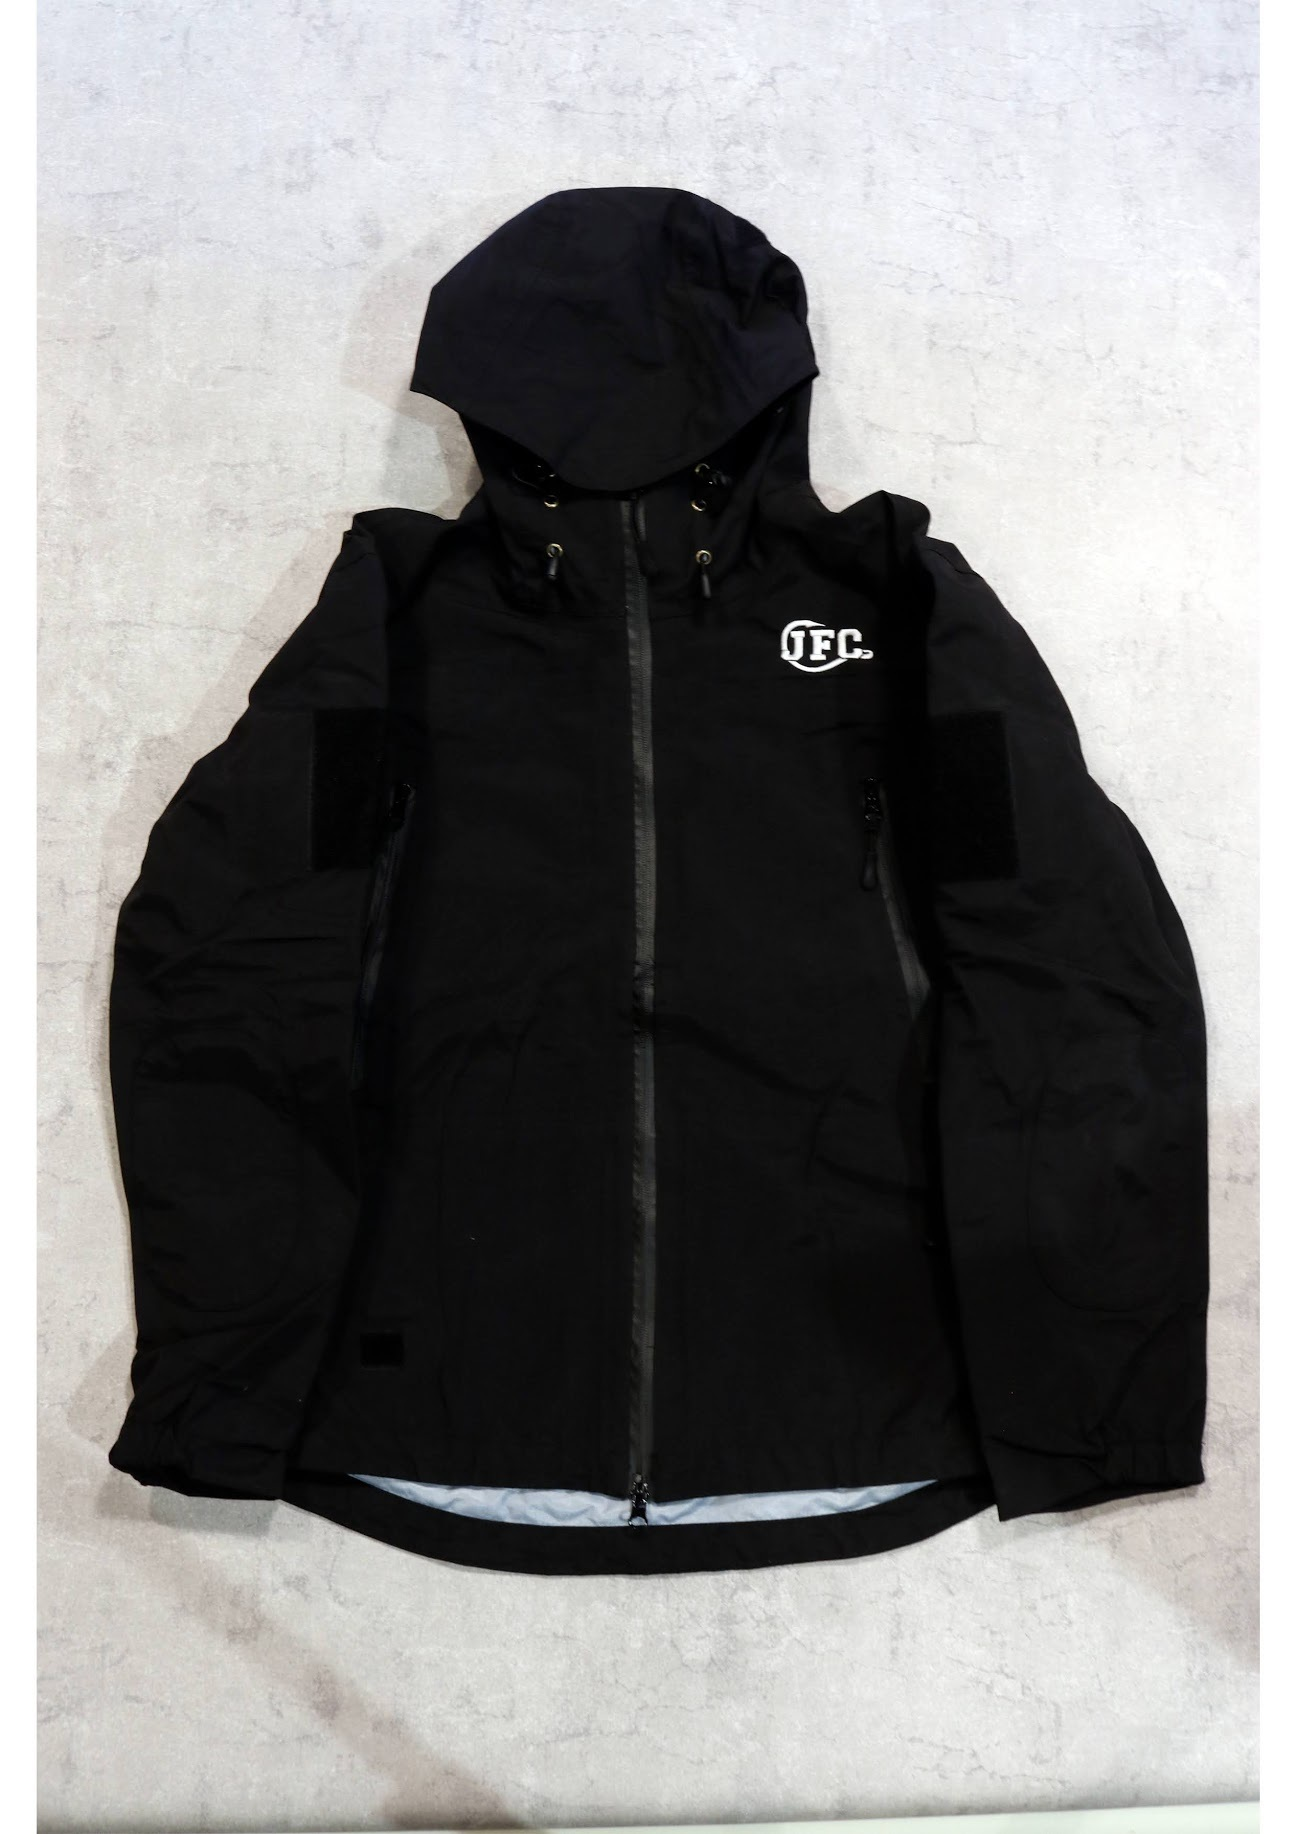 JFC ORIGINAL MOUNTAIN PARKA